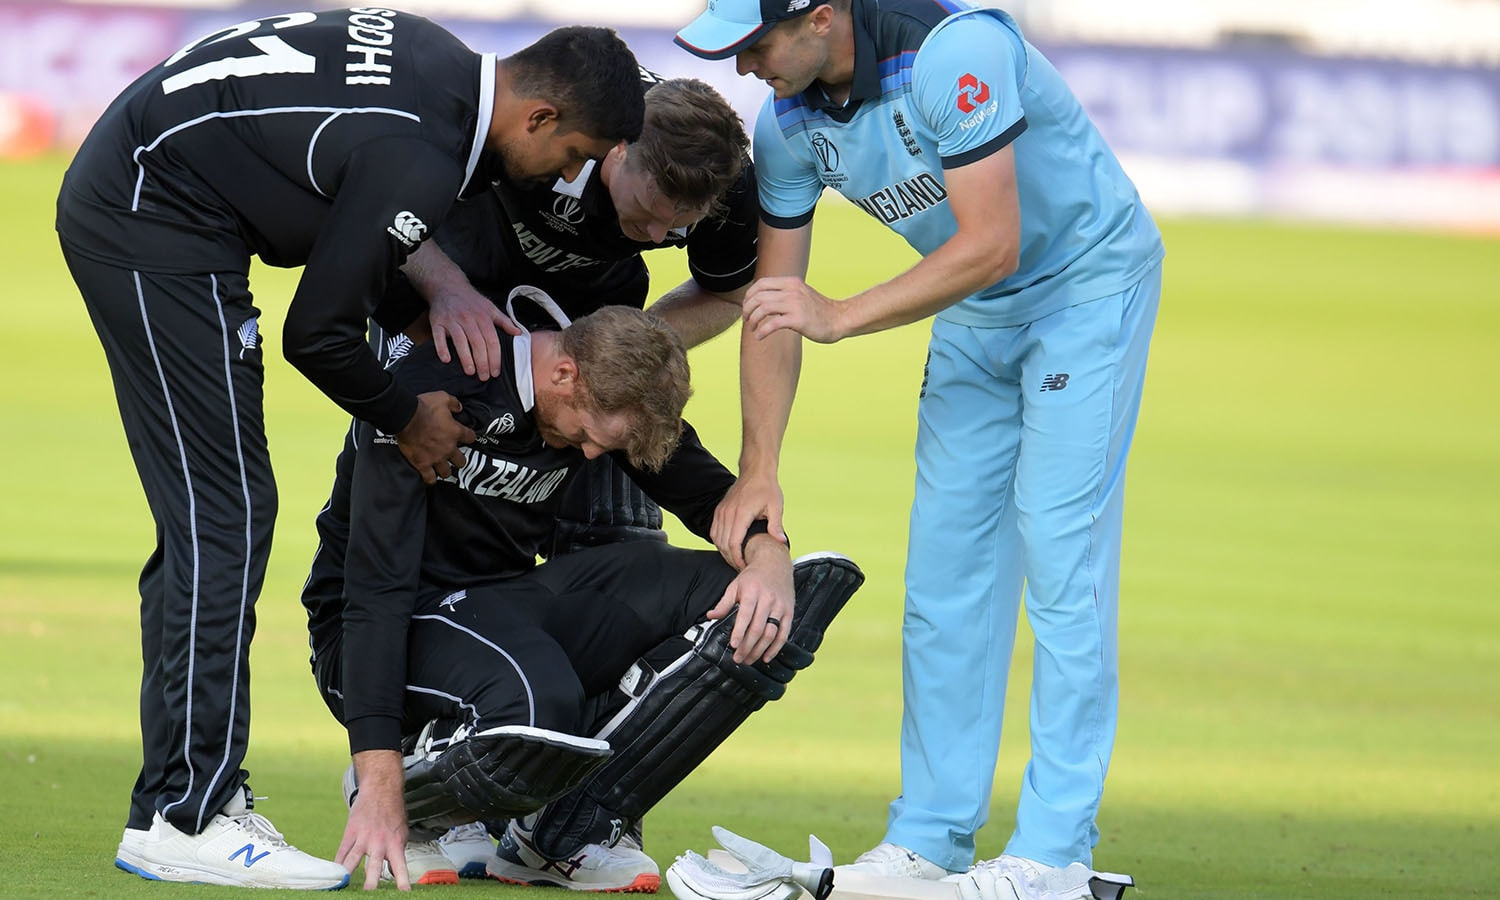 New Zealand's Martin Guptill is assisted by teammates and England's Chris Woakes after the game ended. — AFP